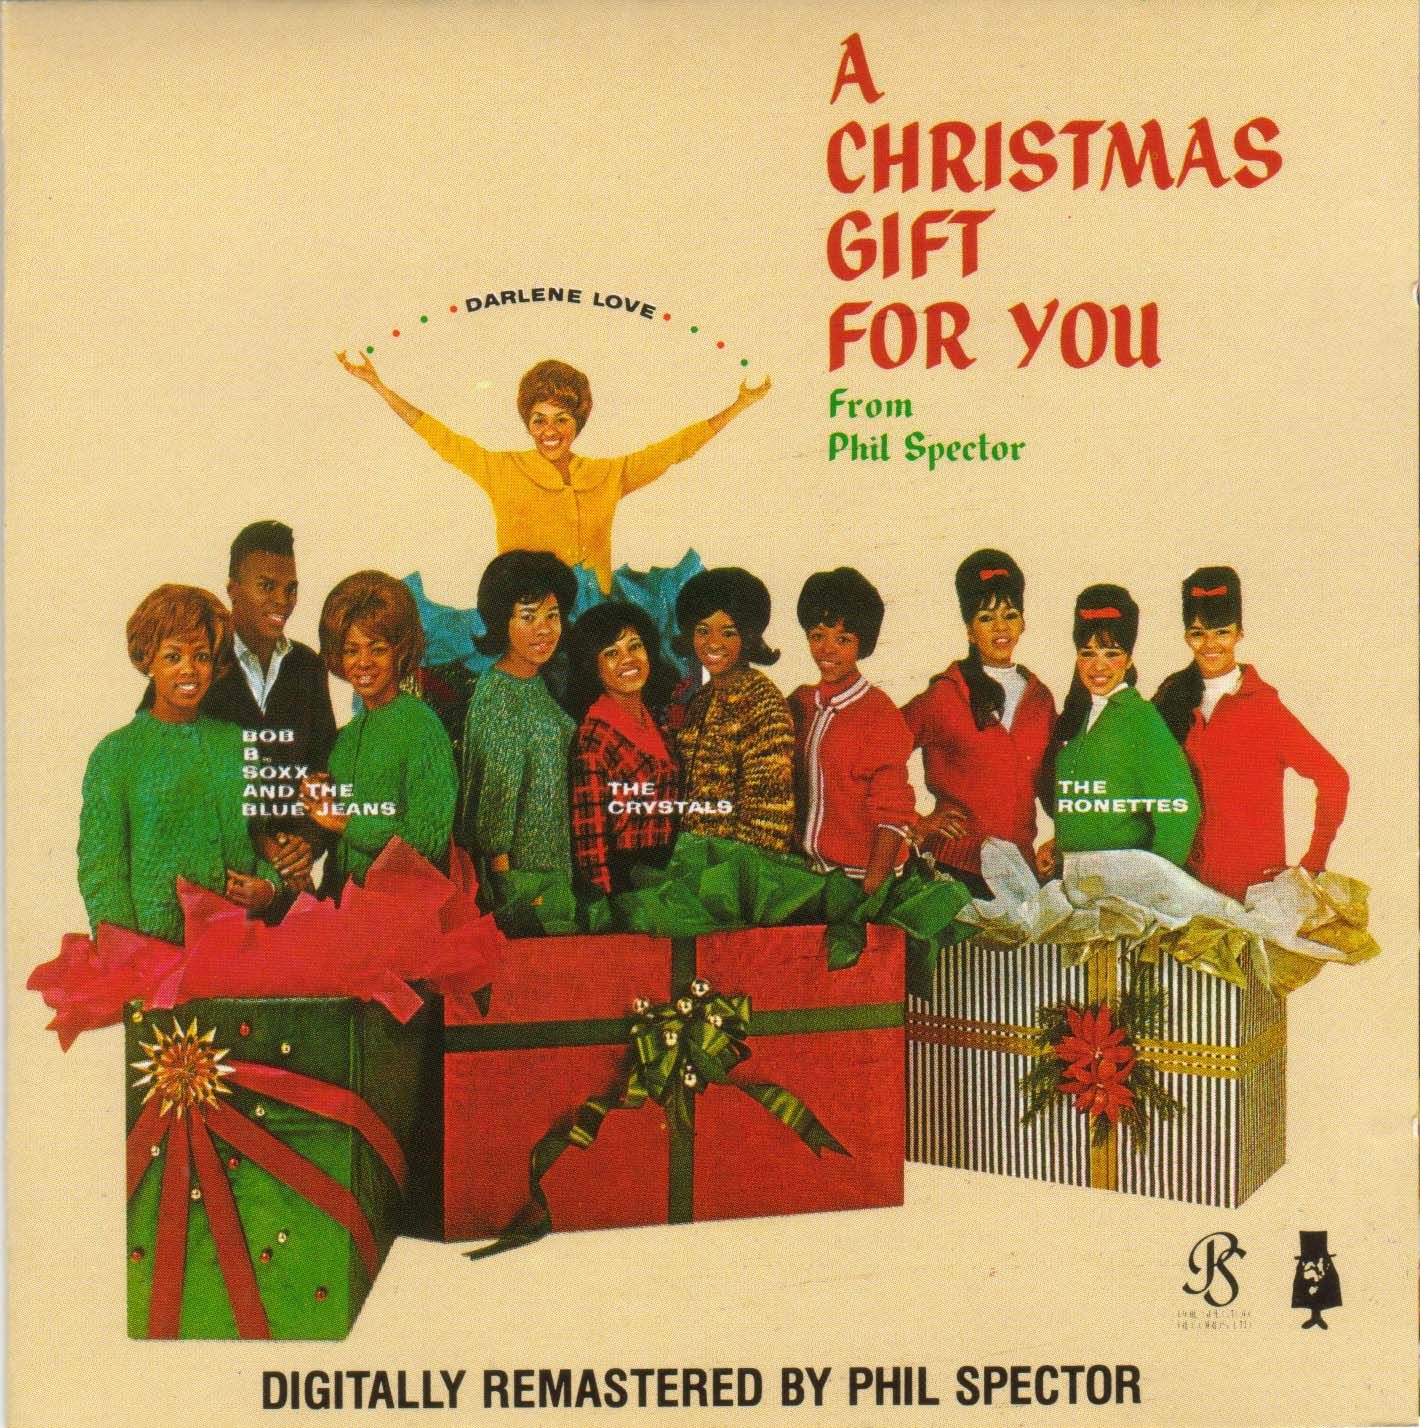 A Christmas Gift for You from Phil Spector.jpg